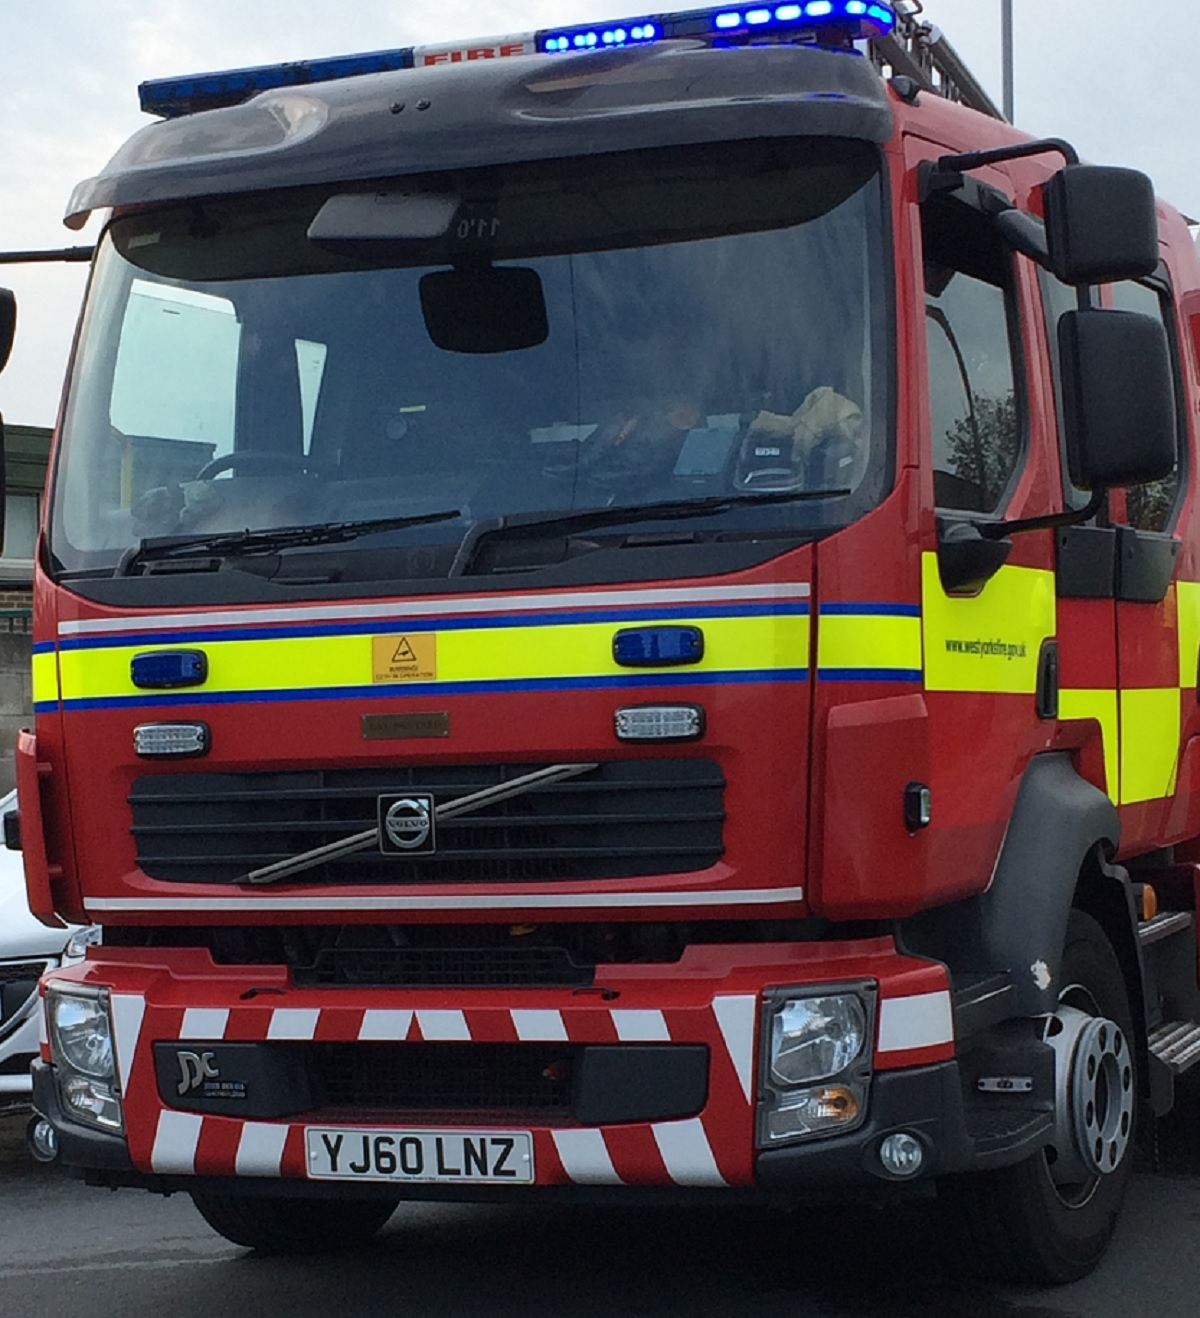 Fire crews from Keighley were called to the incident on Braithwaite Crescent